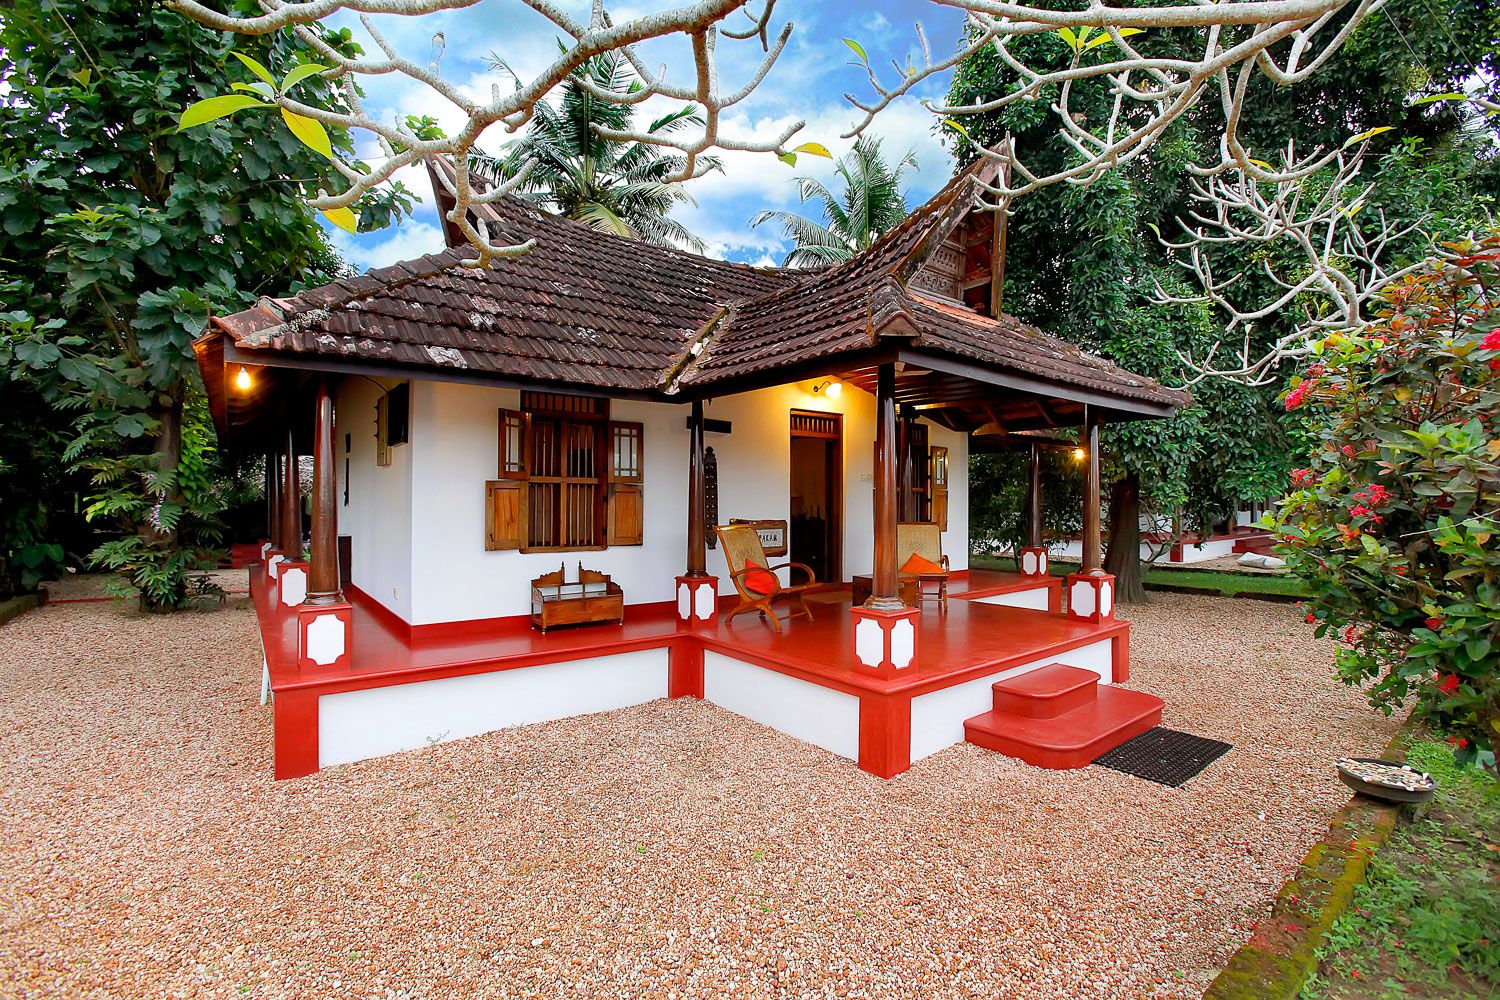 Icymi Indian Village House Design Front View Village